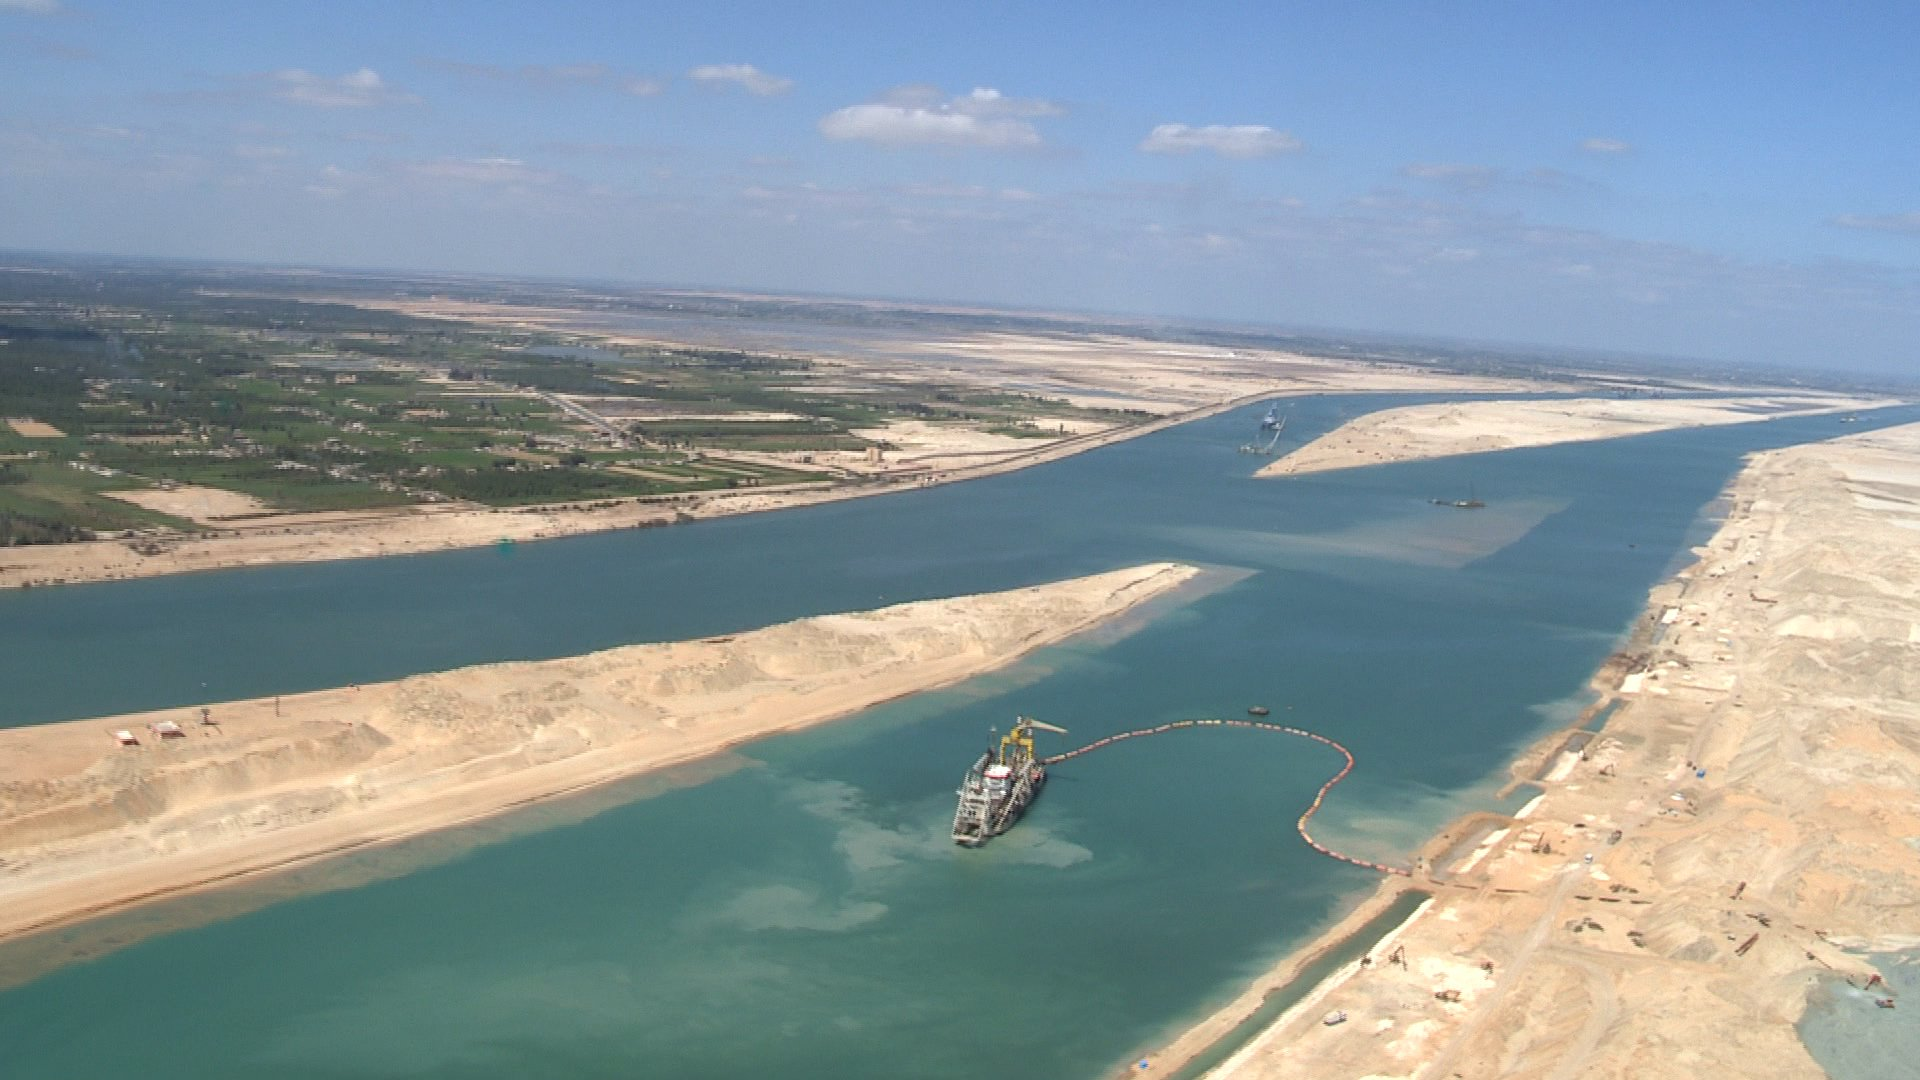 The Suez Canal, arguably one of the most important waterways in the world, could reward Egypt with great benefits, increase exports, decrease the unemployment rate, and develop the economy.